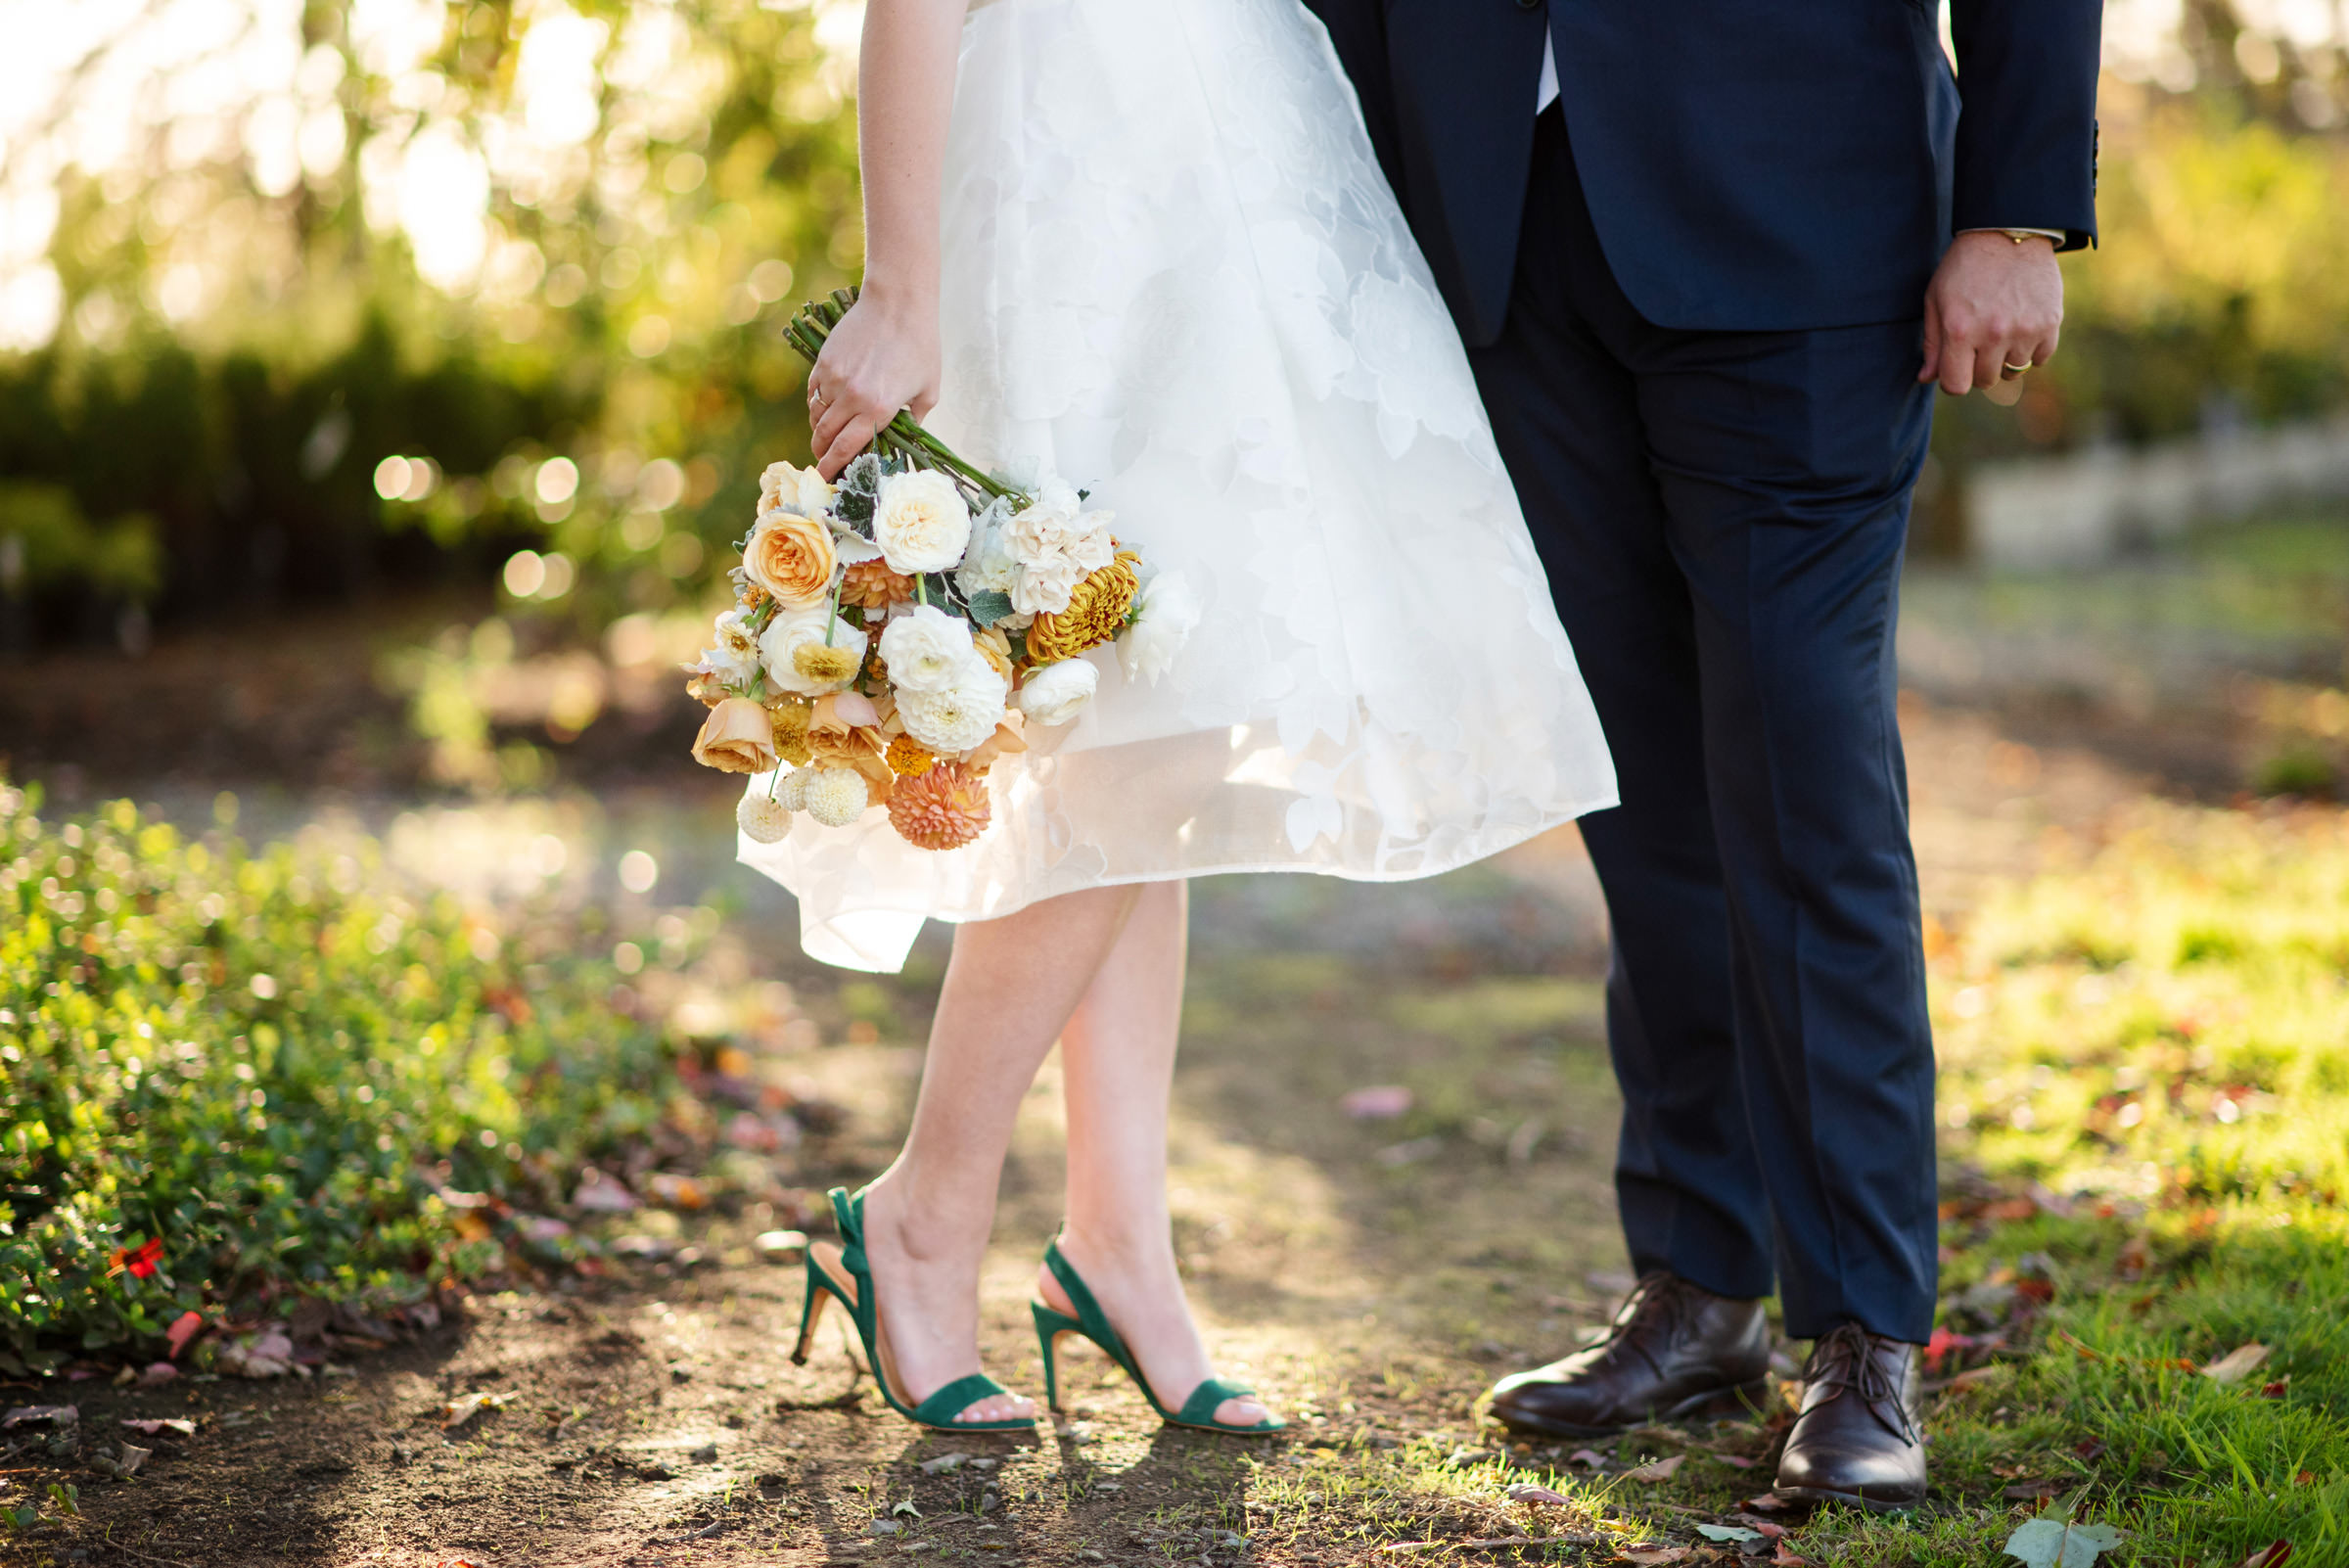 Closeup off bride shoes and bouquet - photo by Barbie Hull Photography